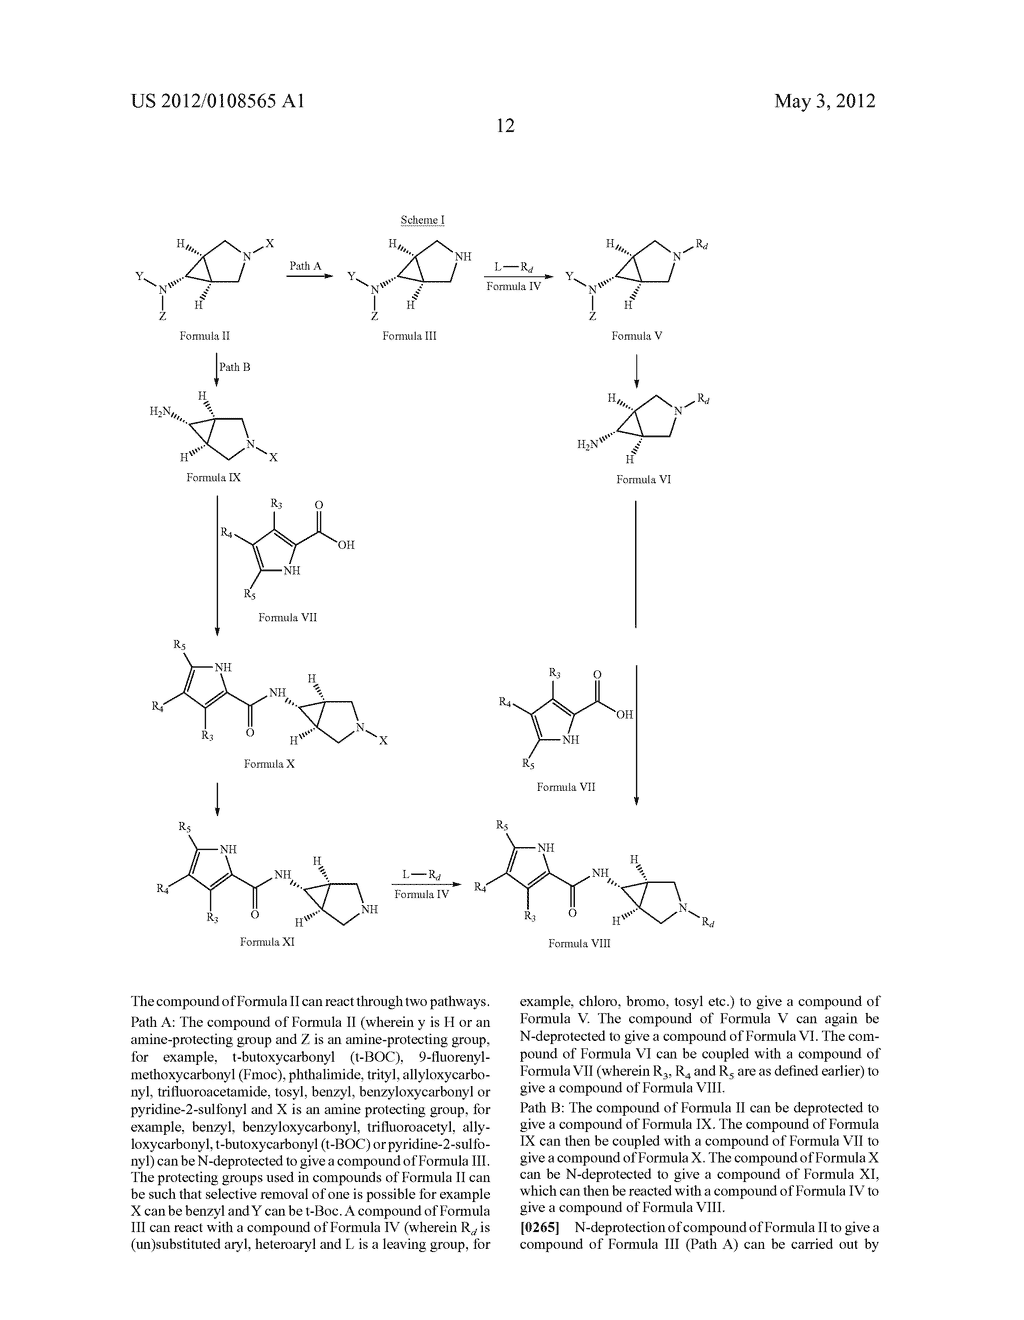 PYRROLE CARBOXYLIC ACID DERIVATIVES AS ANTIBACTERIAL AGENTS - diagram, schematic, and image 13